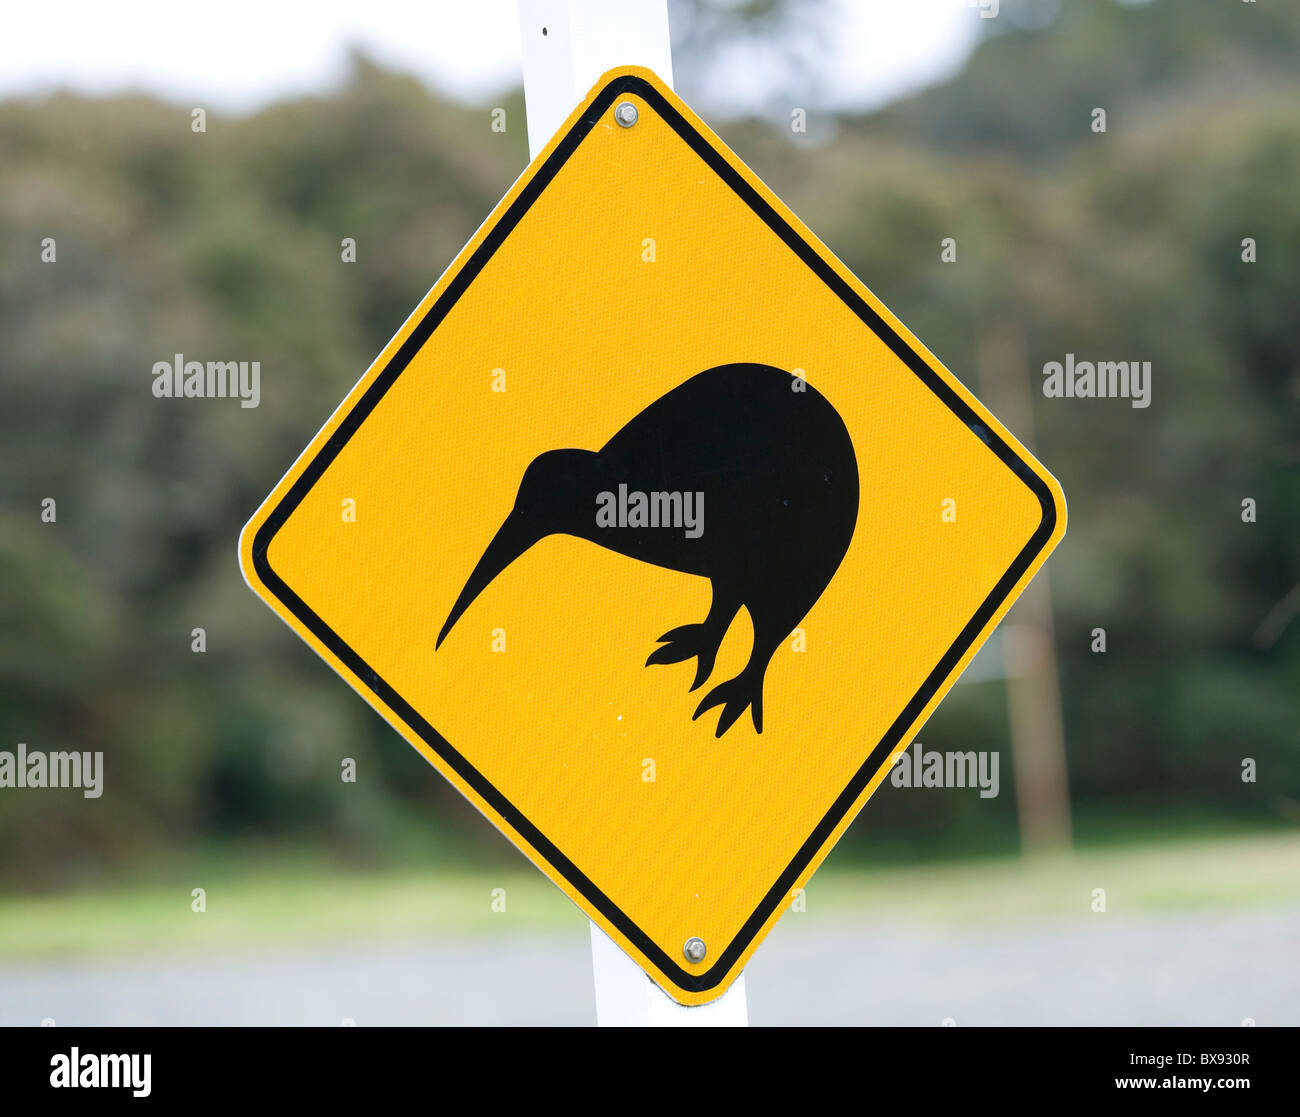 Kiwi crossing road sign, Oban, Stewart Island, New Zealand. Stock Photo